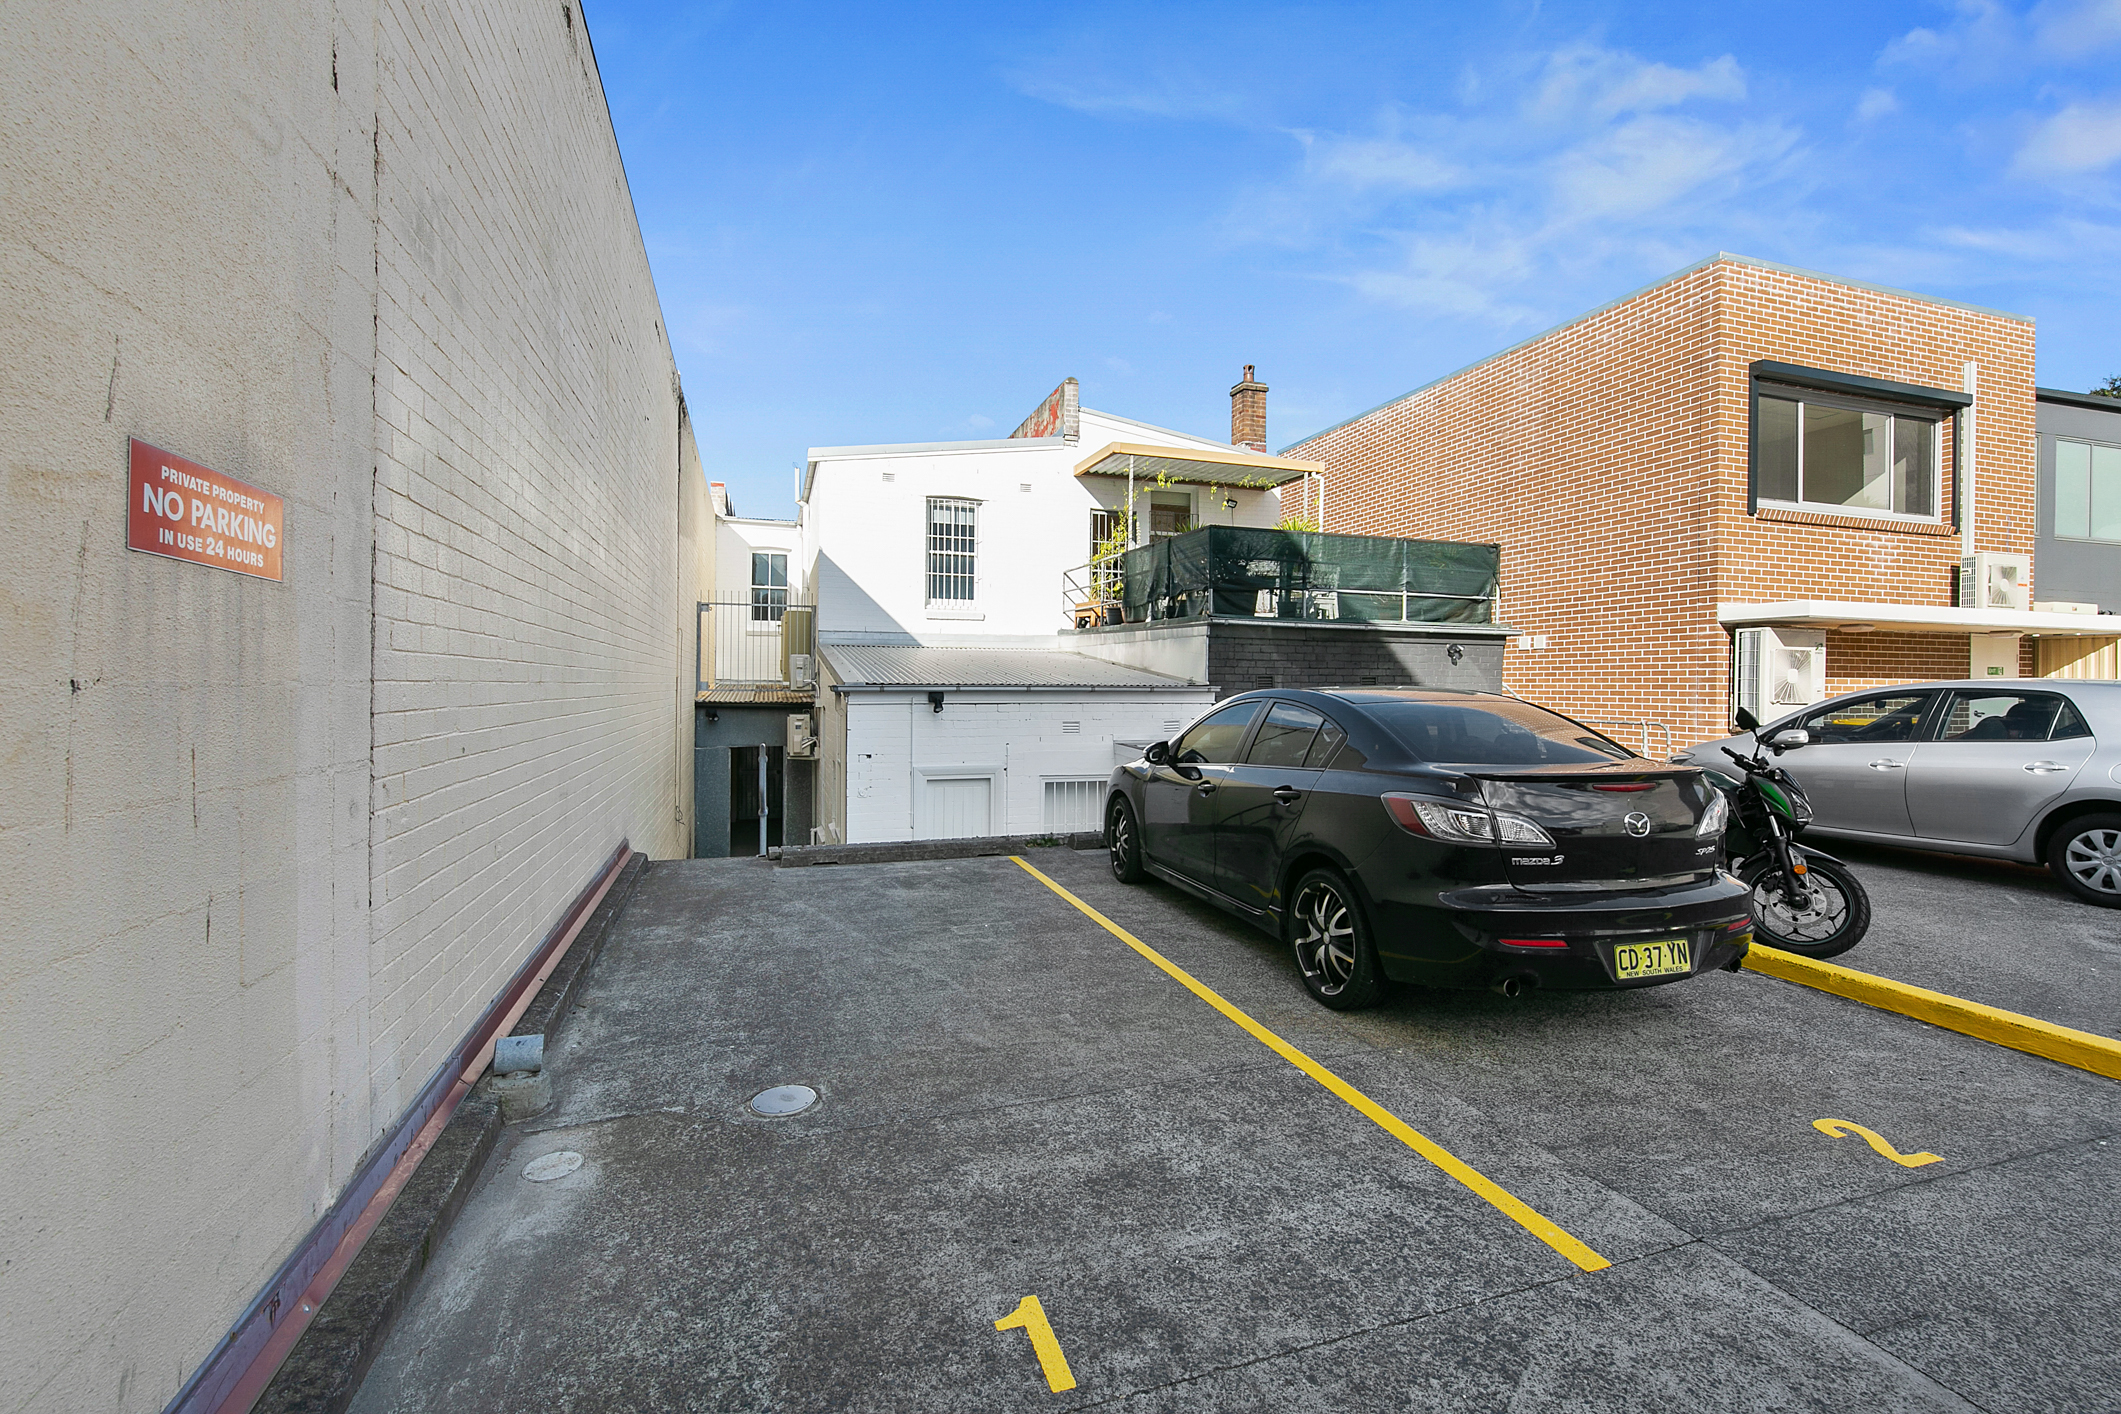 2/163 Great North Rd (Enter Via East St), Five Dock